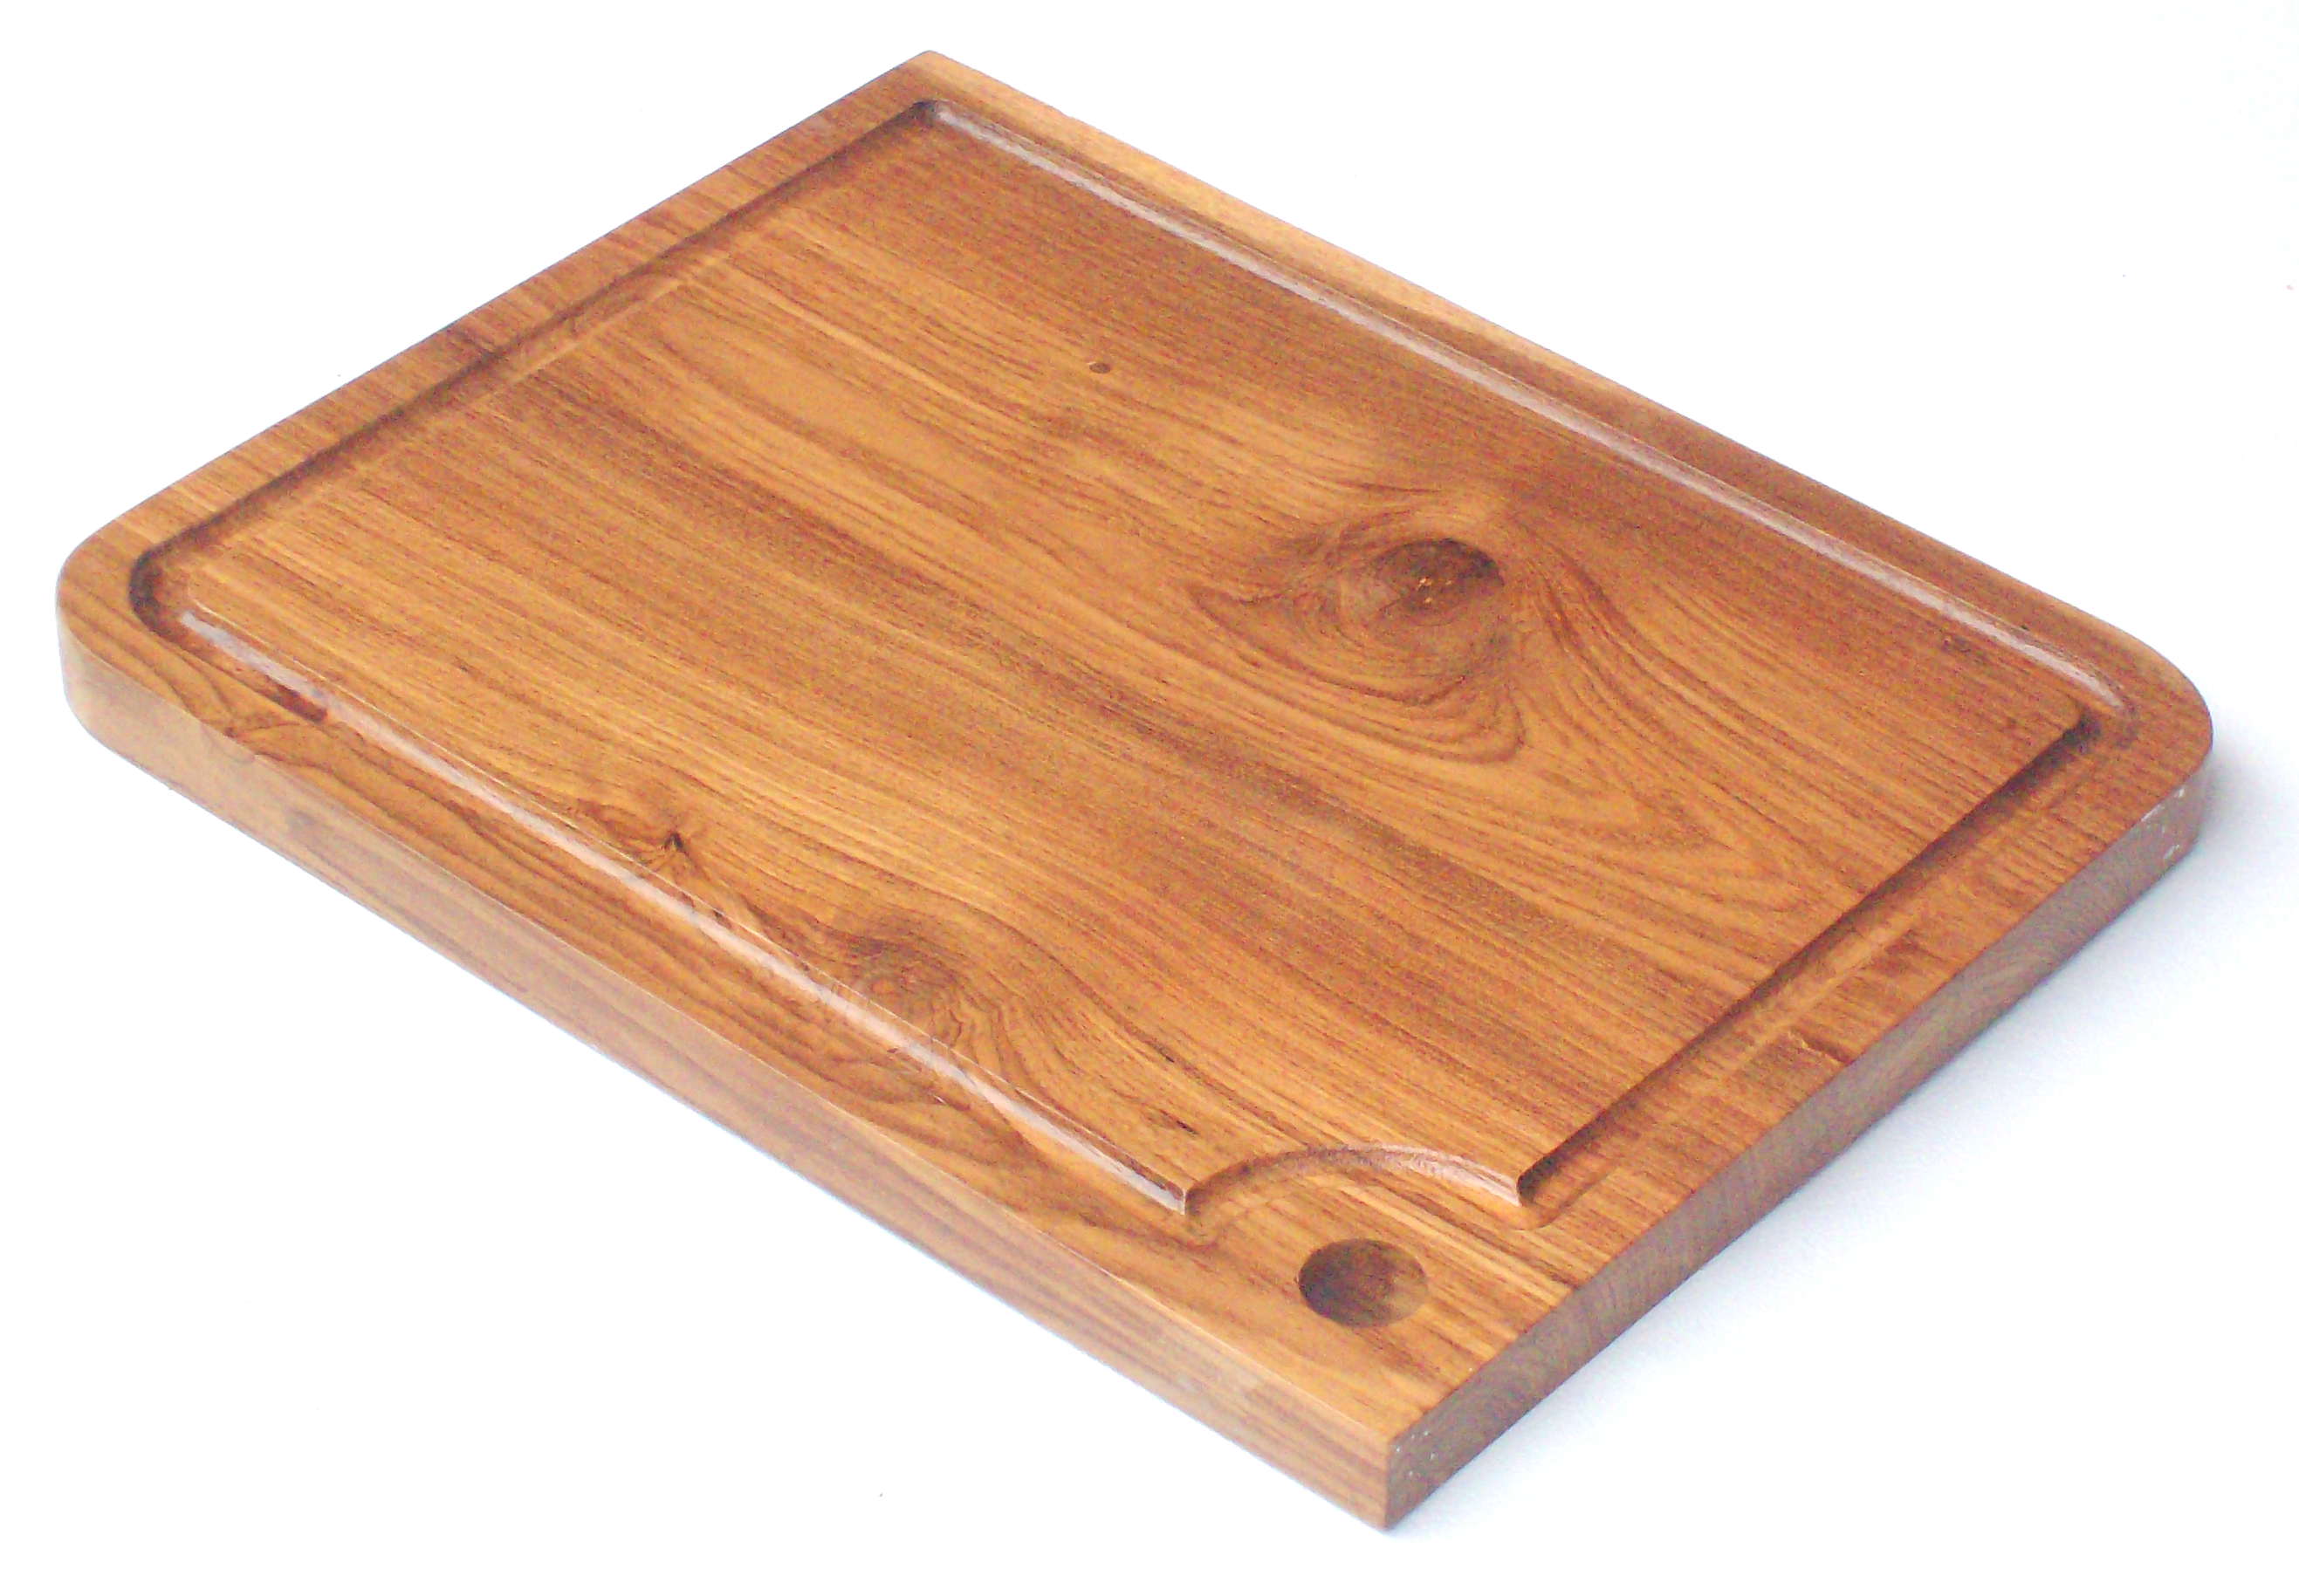 Reclaimed Teak Chopping Board By Thai-Pepper | EnviroGadget